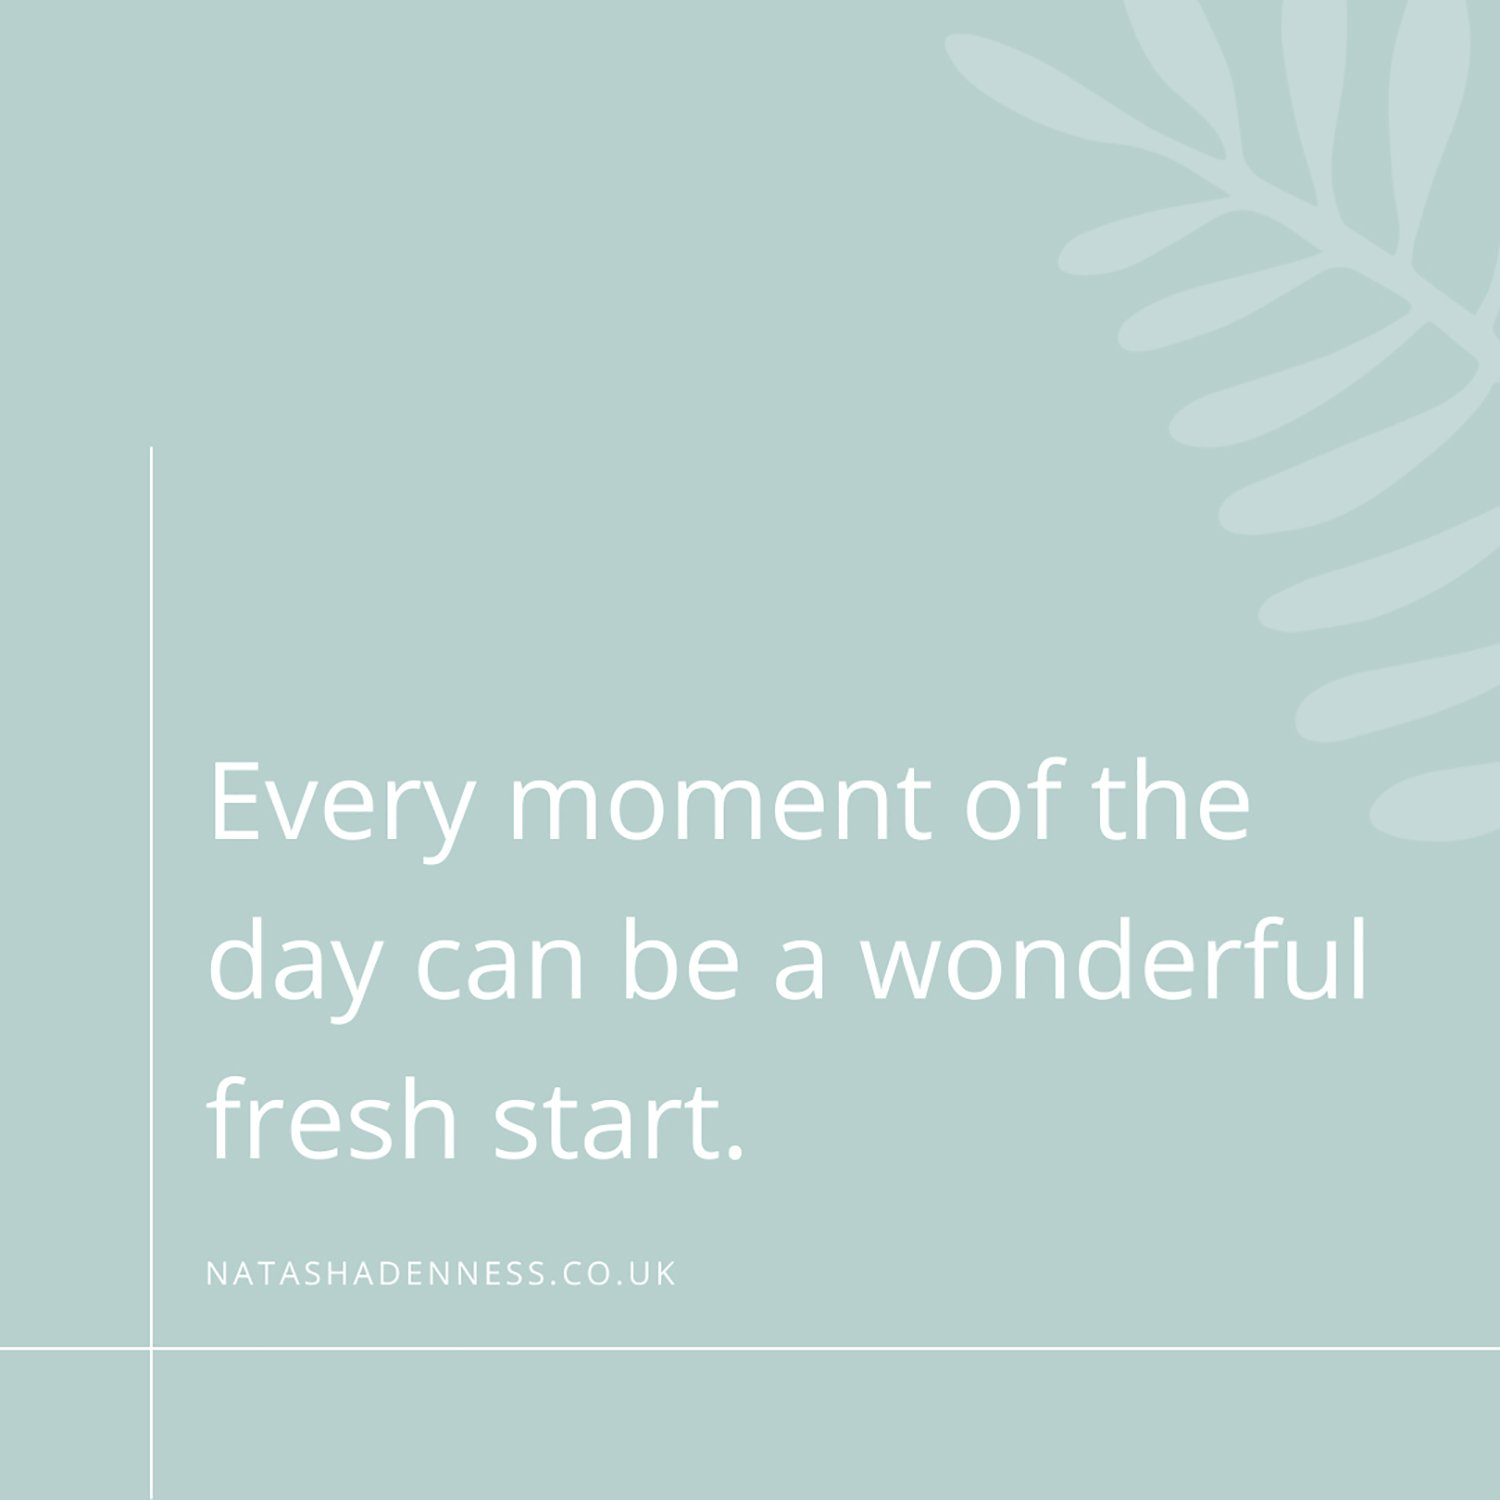 Every moment of the day can be a wonderful fresh start | Natasha Denness Coaching